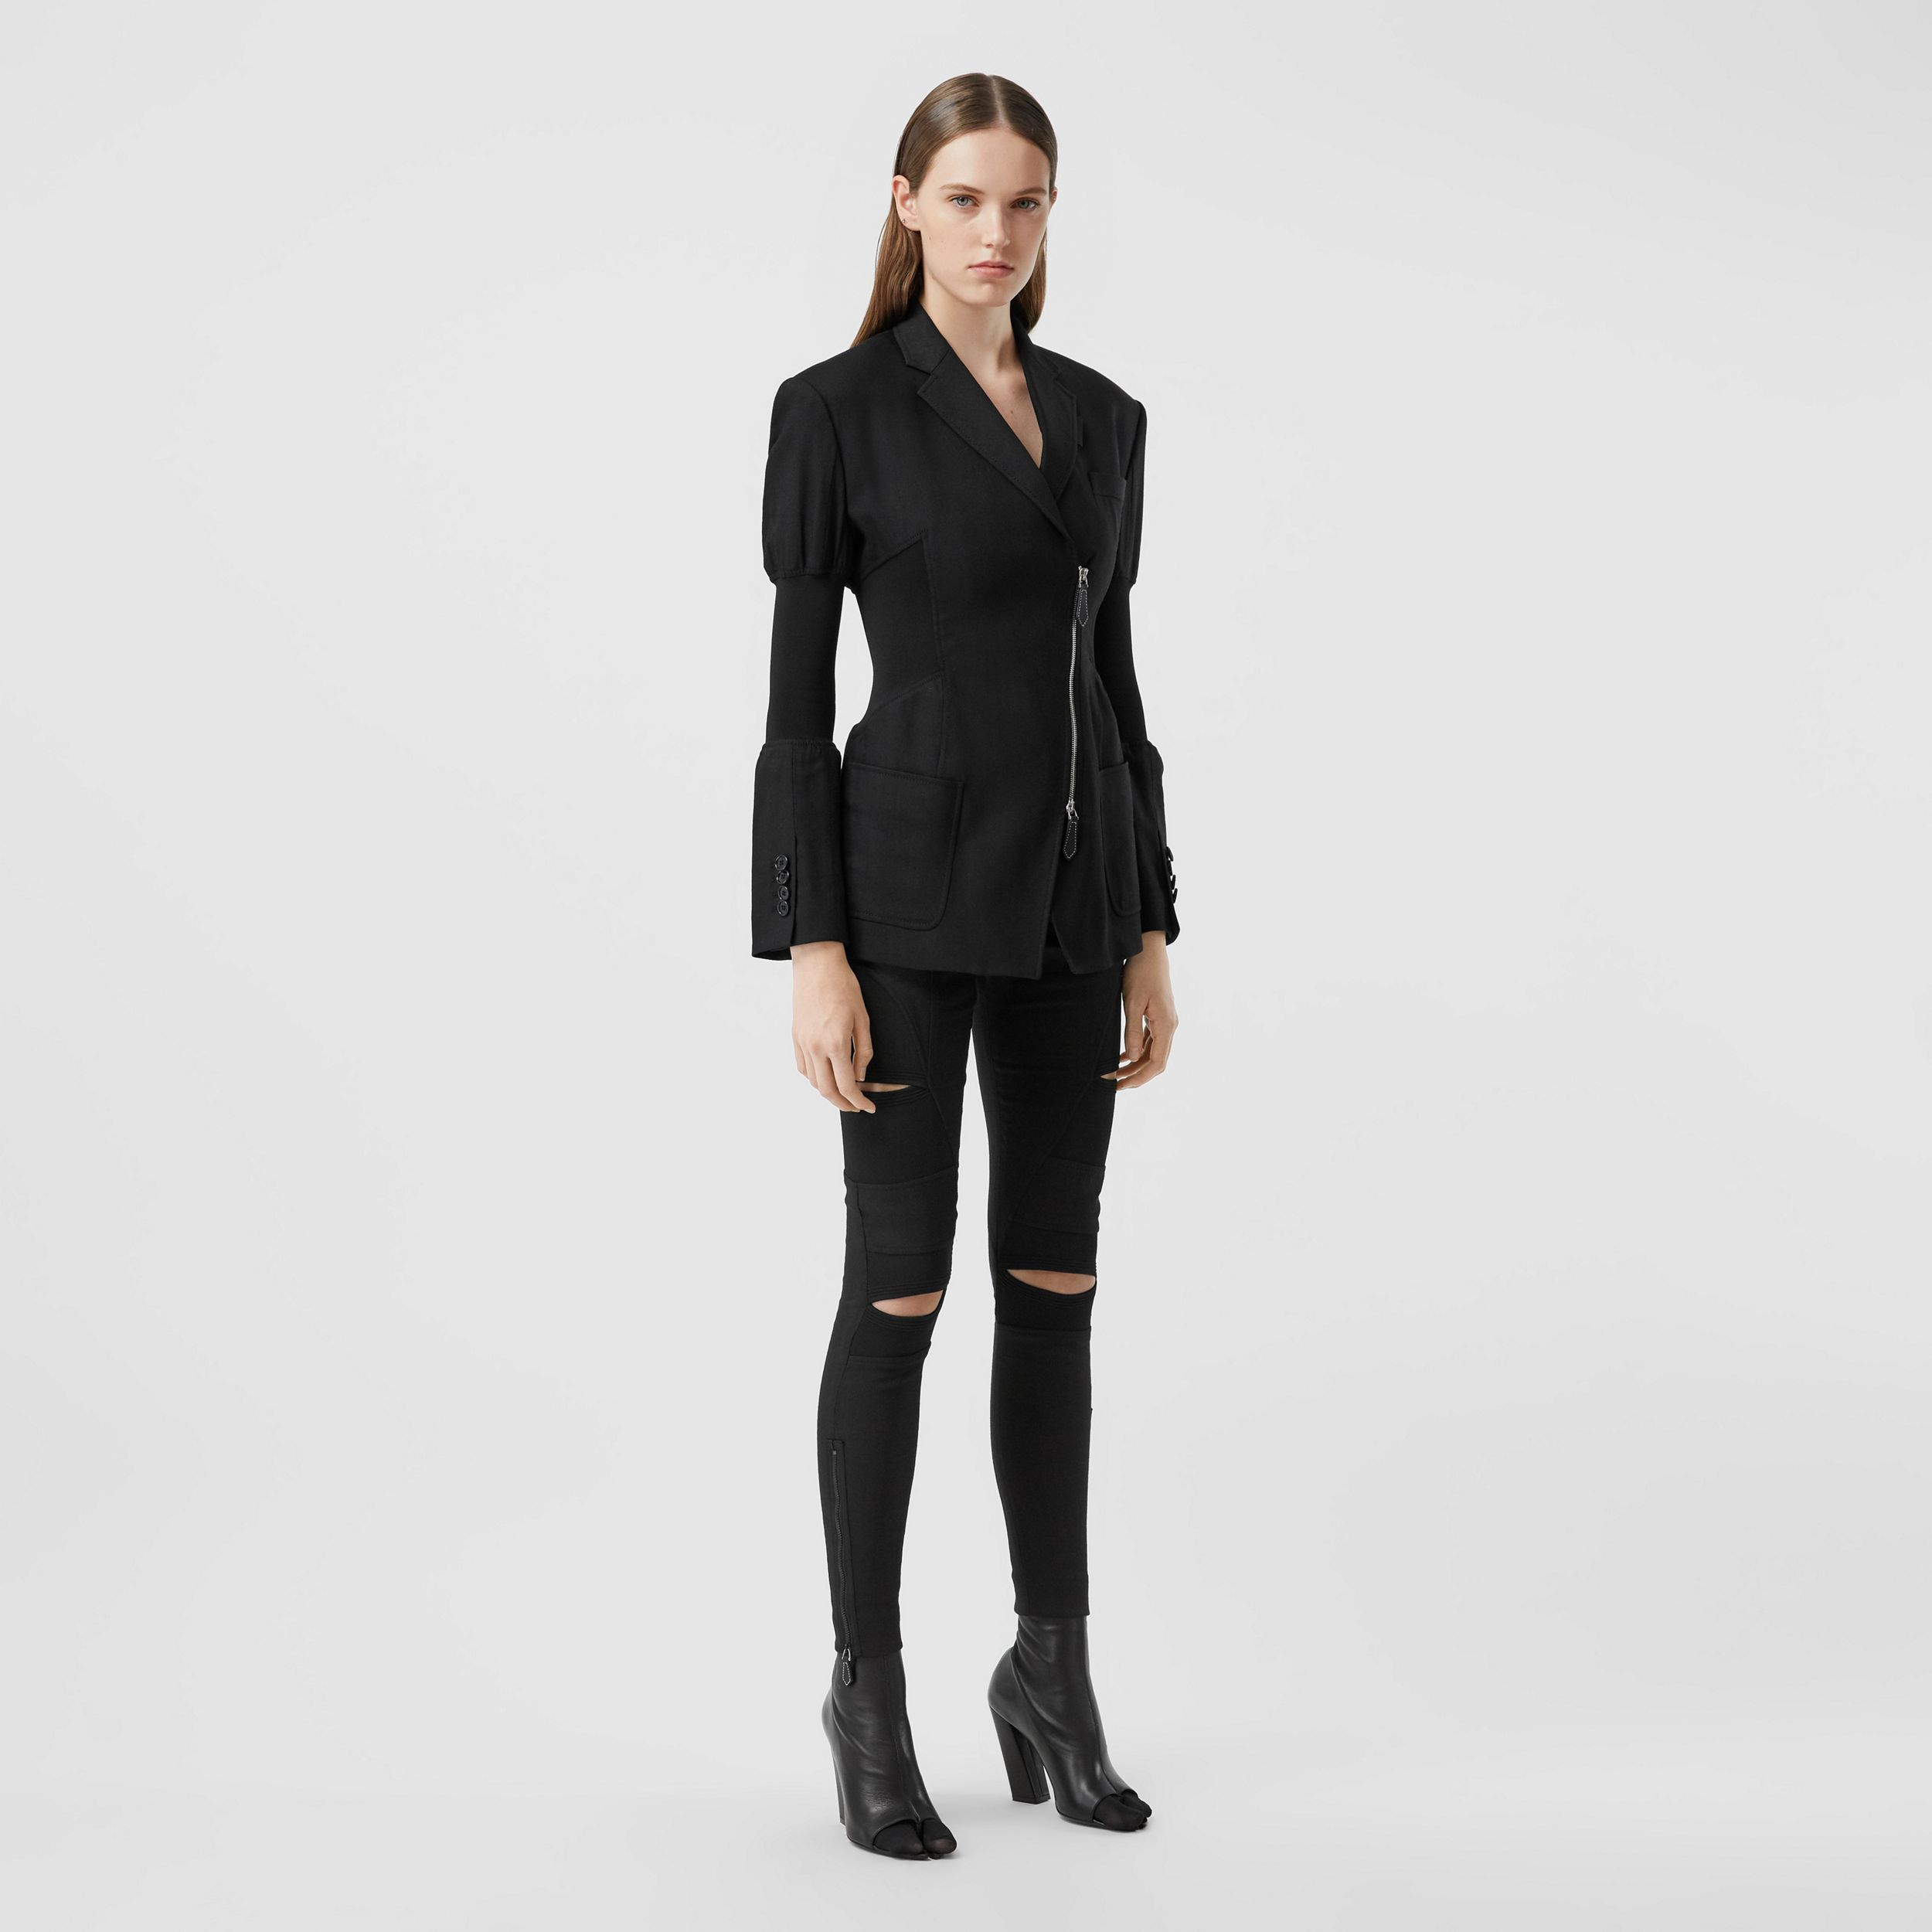 Technical Twill Reconstructed Blazer in Black - Women | Burberry - 1